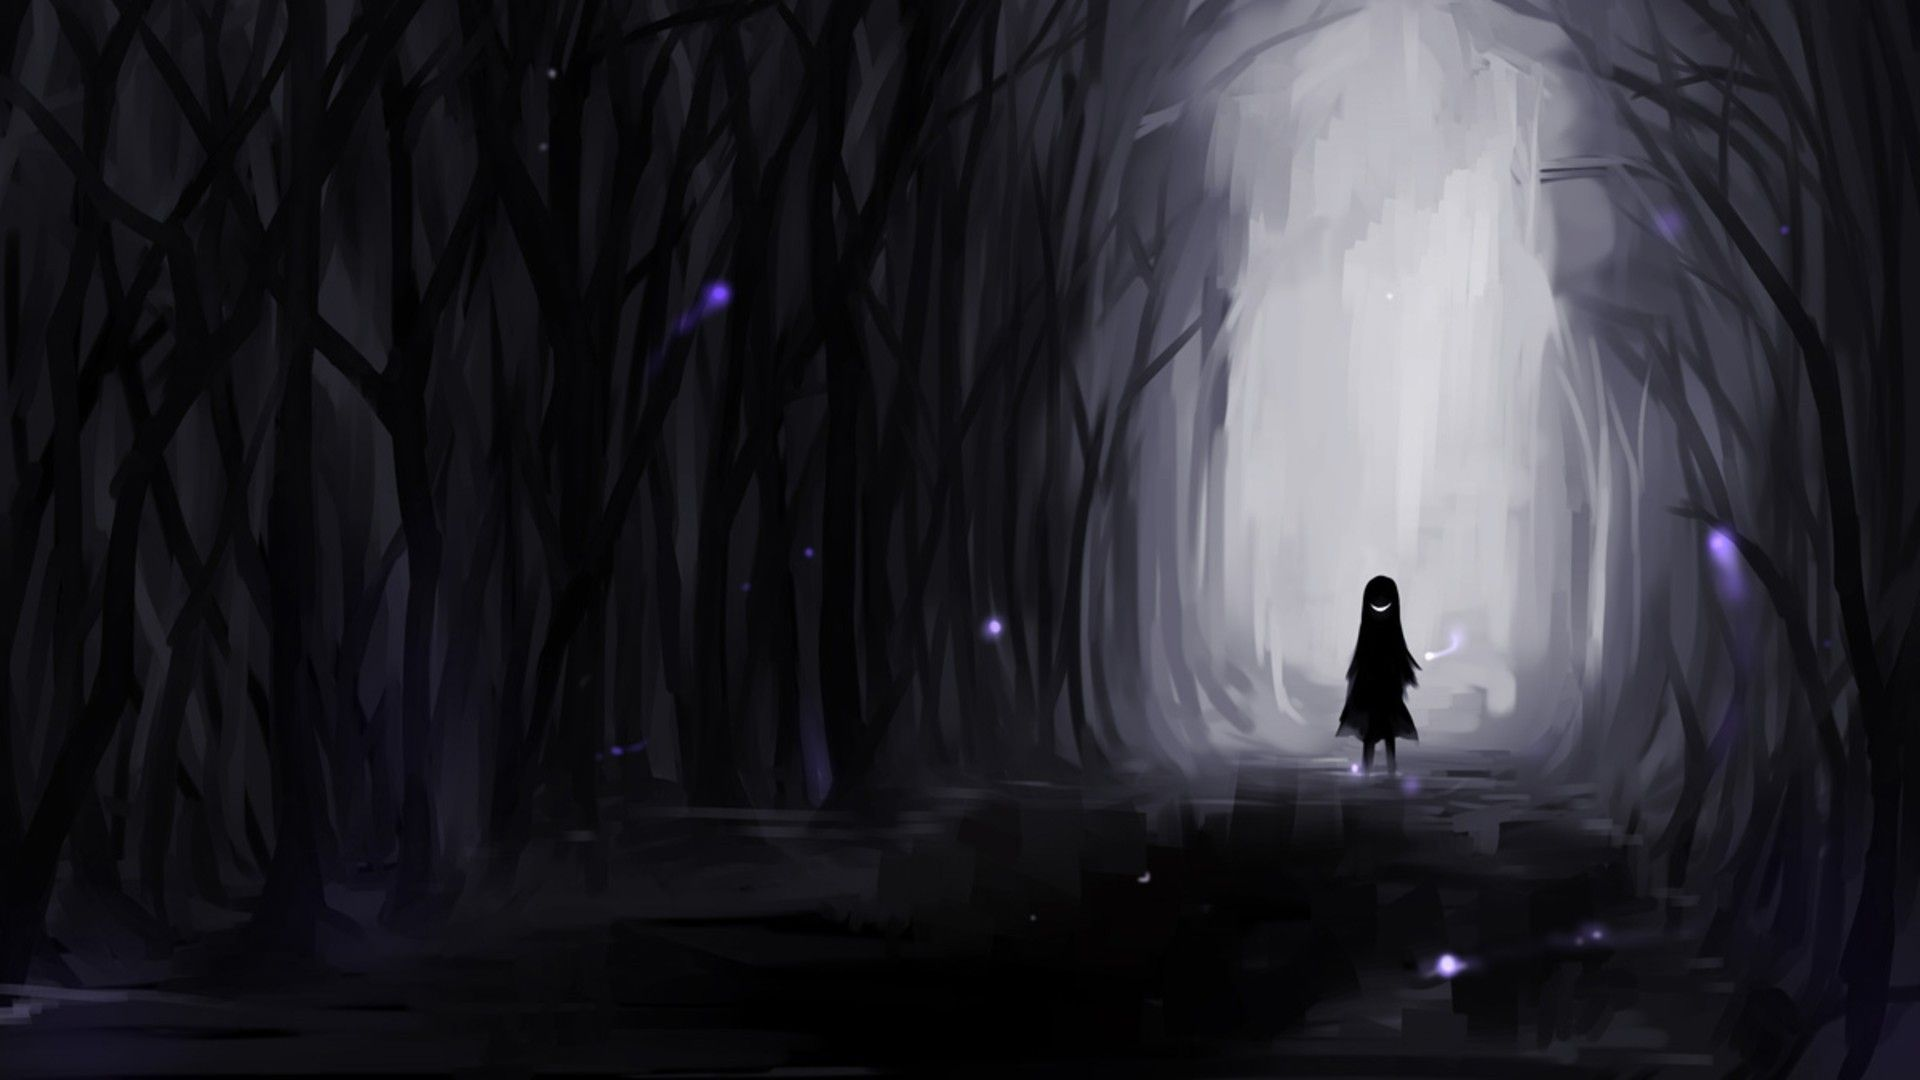 Scary Anime Horror Wallpapers Top Free Scary Anime Horror Backgrounds Wallpaperaccess